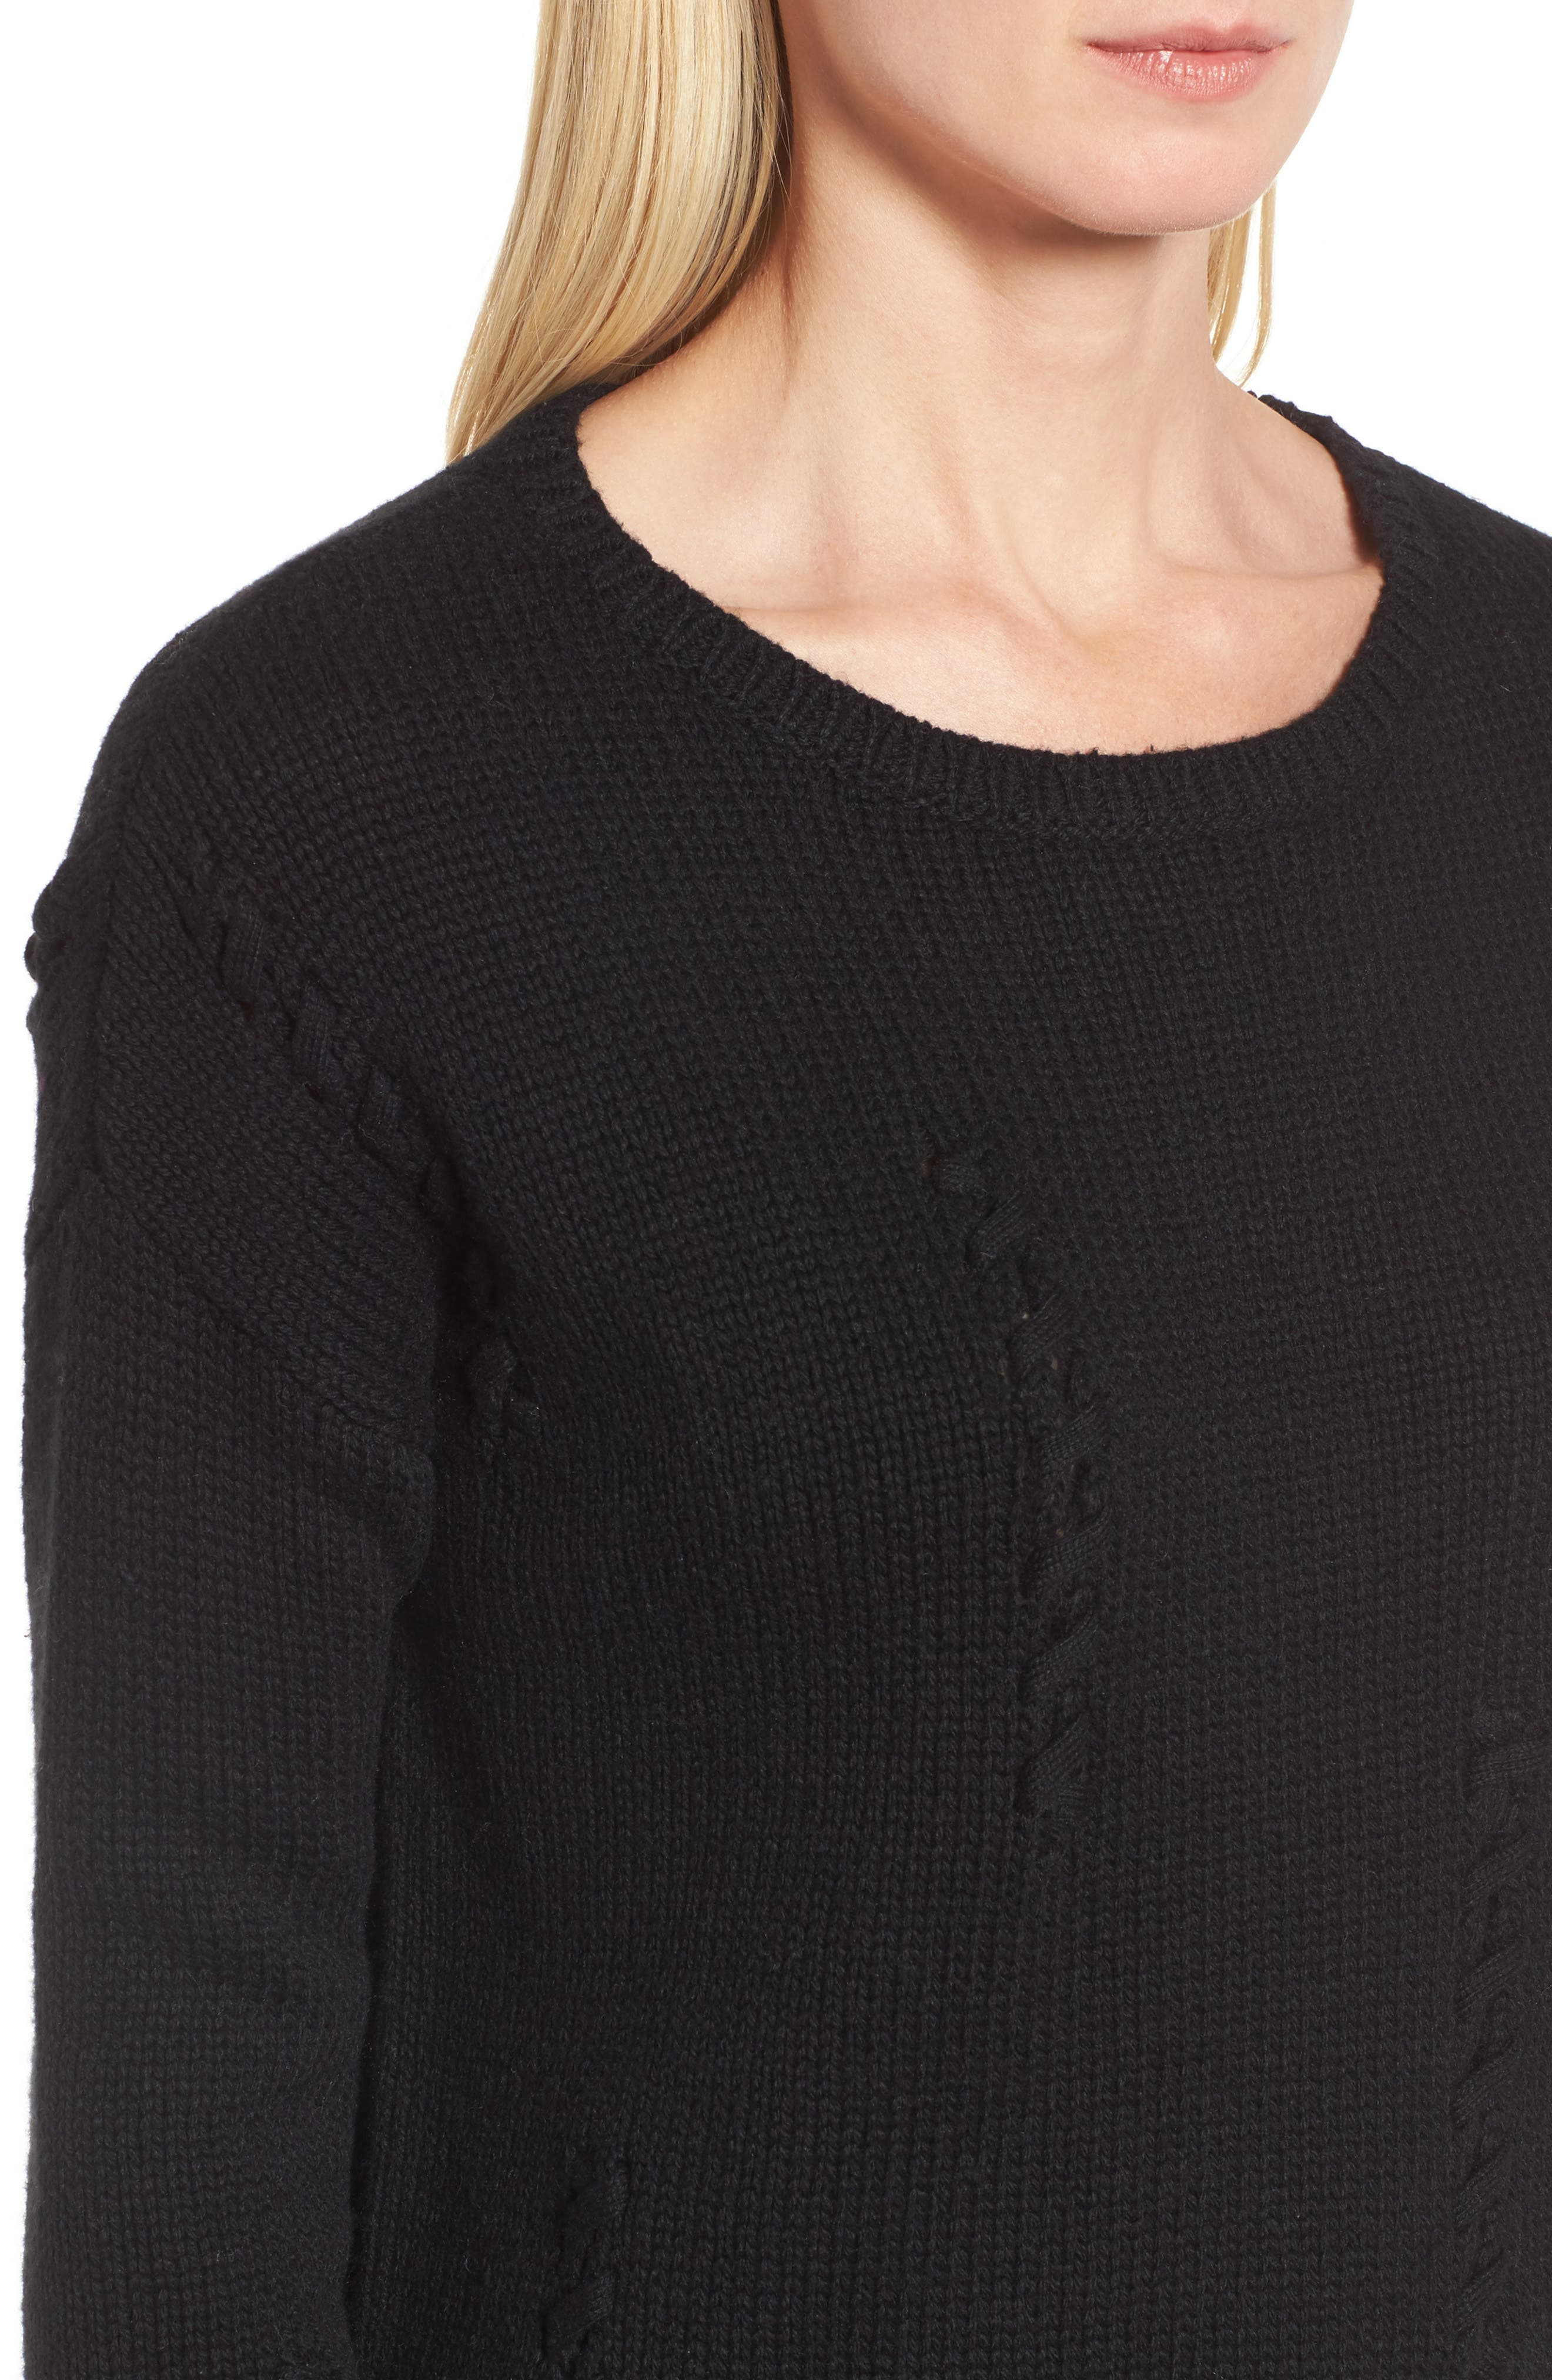 Whipstitch Detail Sweater,                             Alternate thumbnail 4, color,                             Black